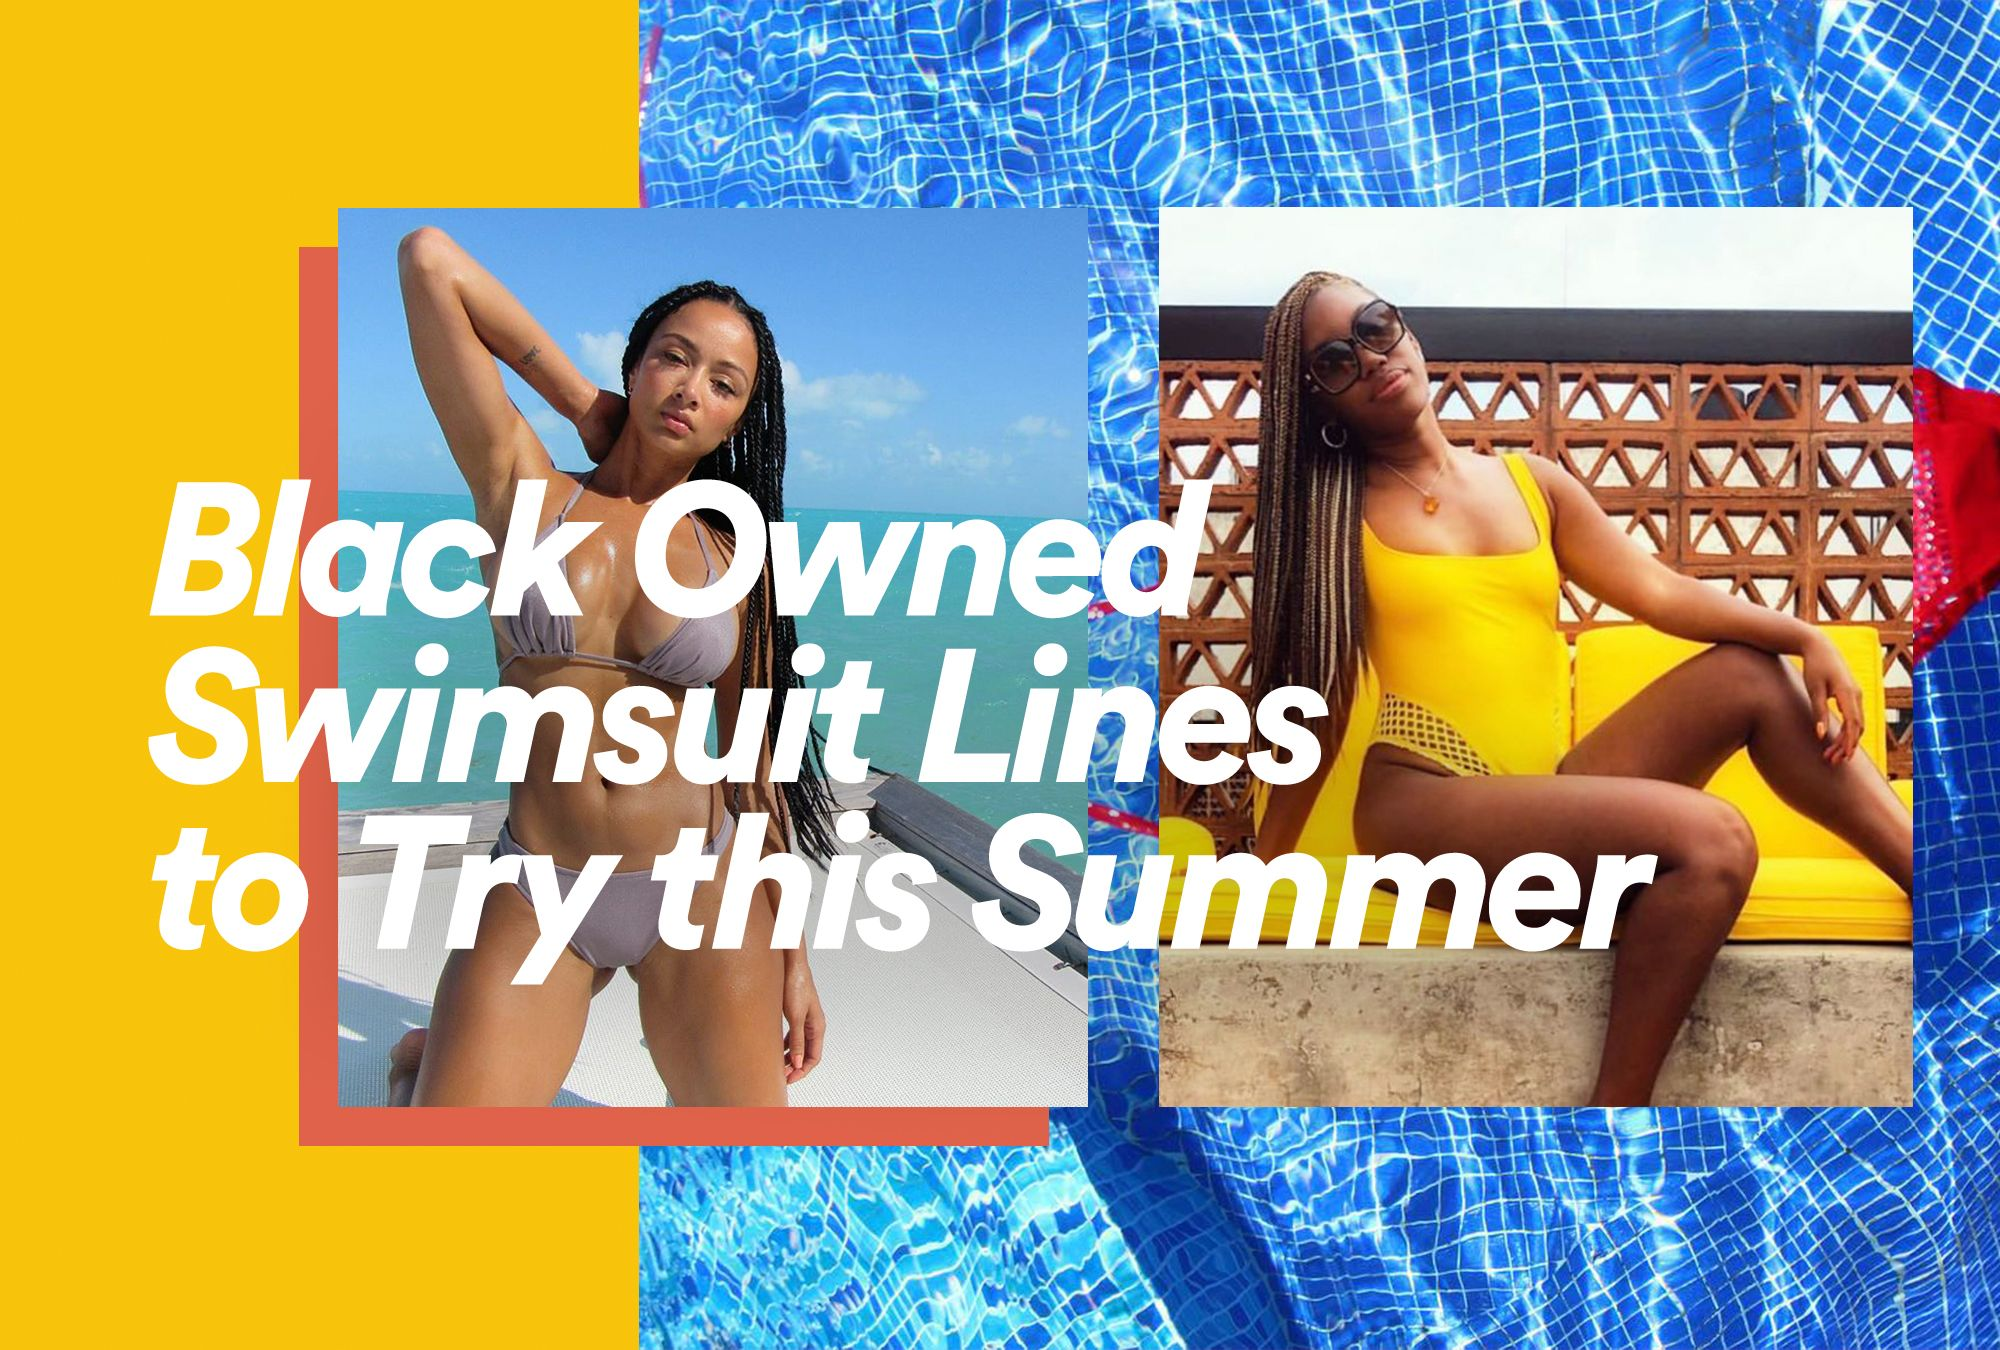 Black Owned Swimsuit Lines to Try This Summer